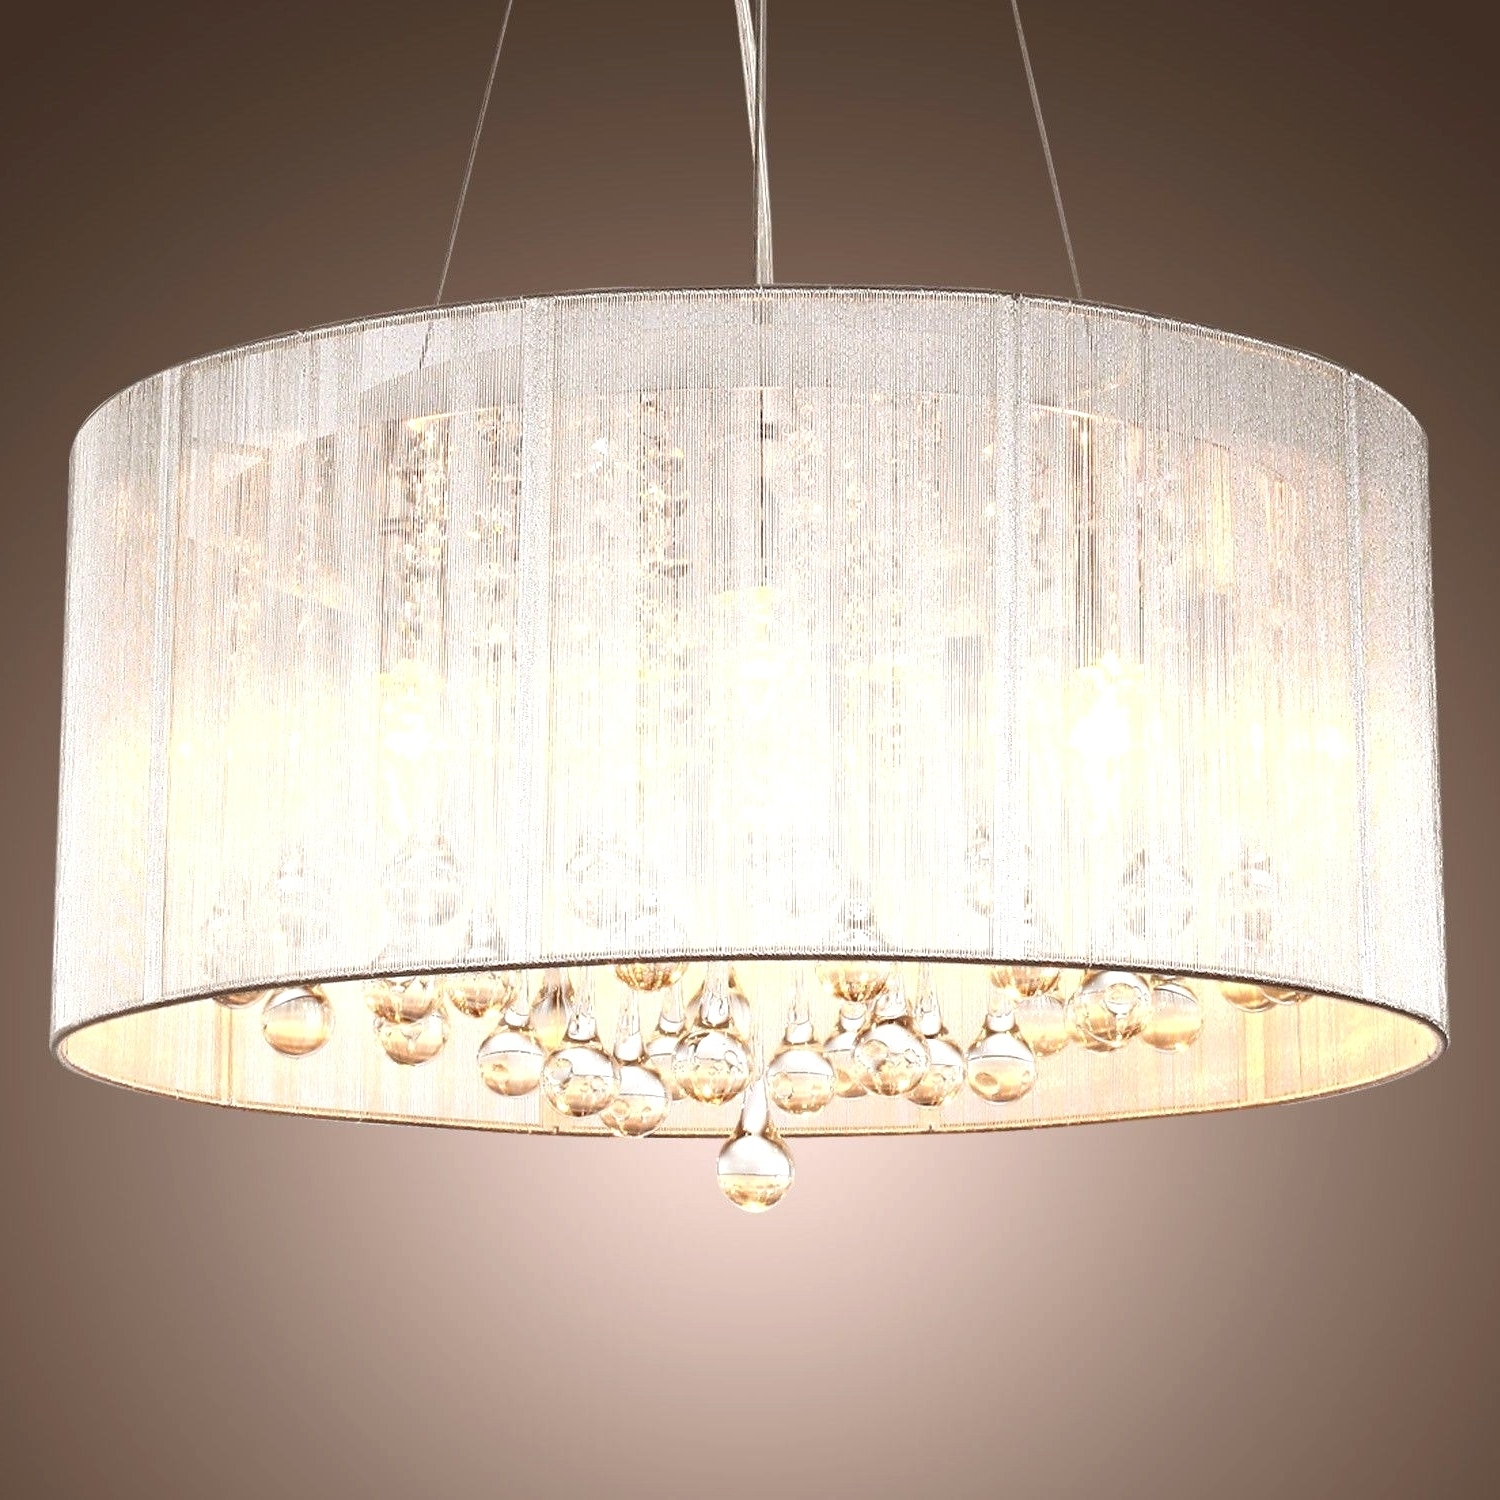 Latest Chandeliers Design : Magnificent Best Clip On Drum Chandelier Shades Pertaining To Clip On Drum Chandelier Shades (View 3 of 15)